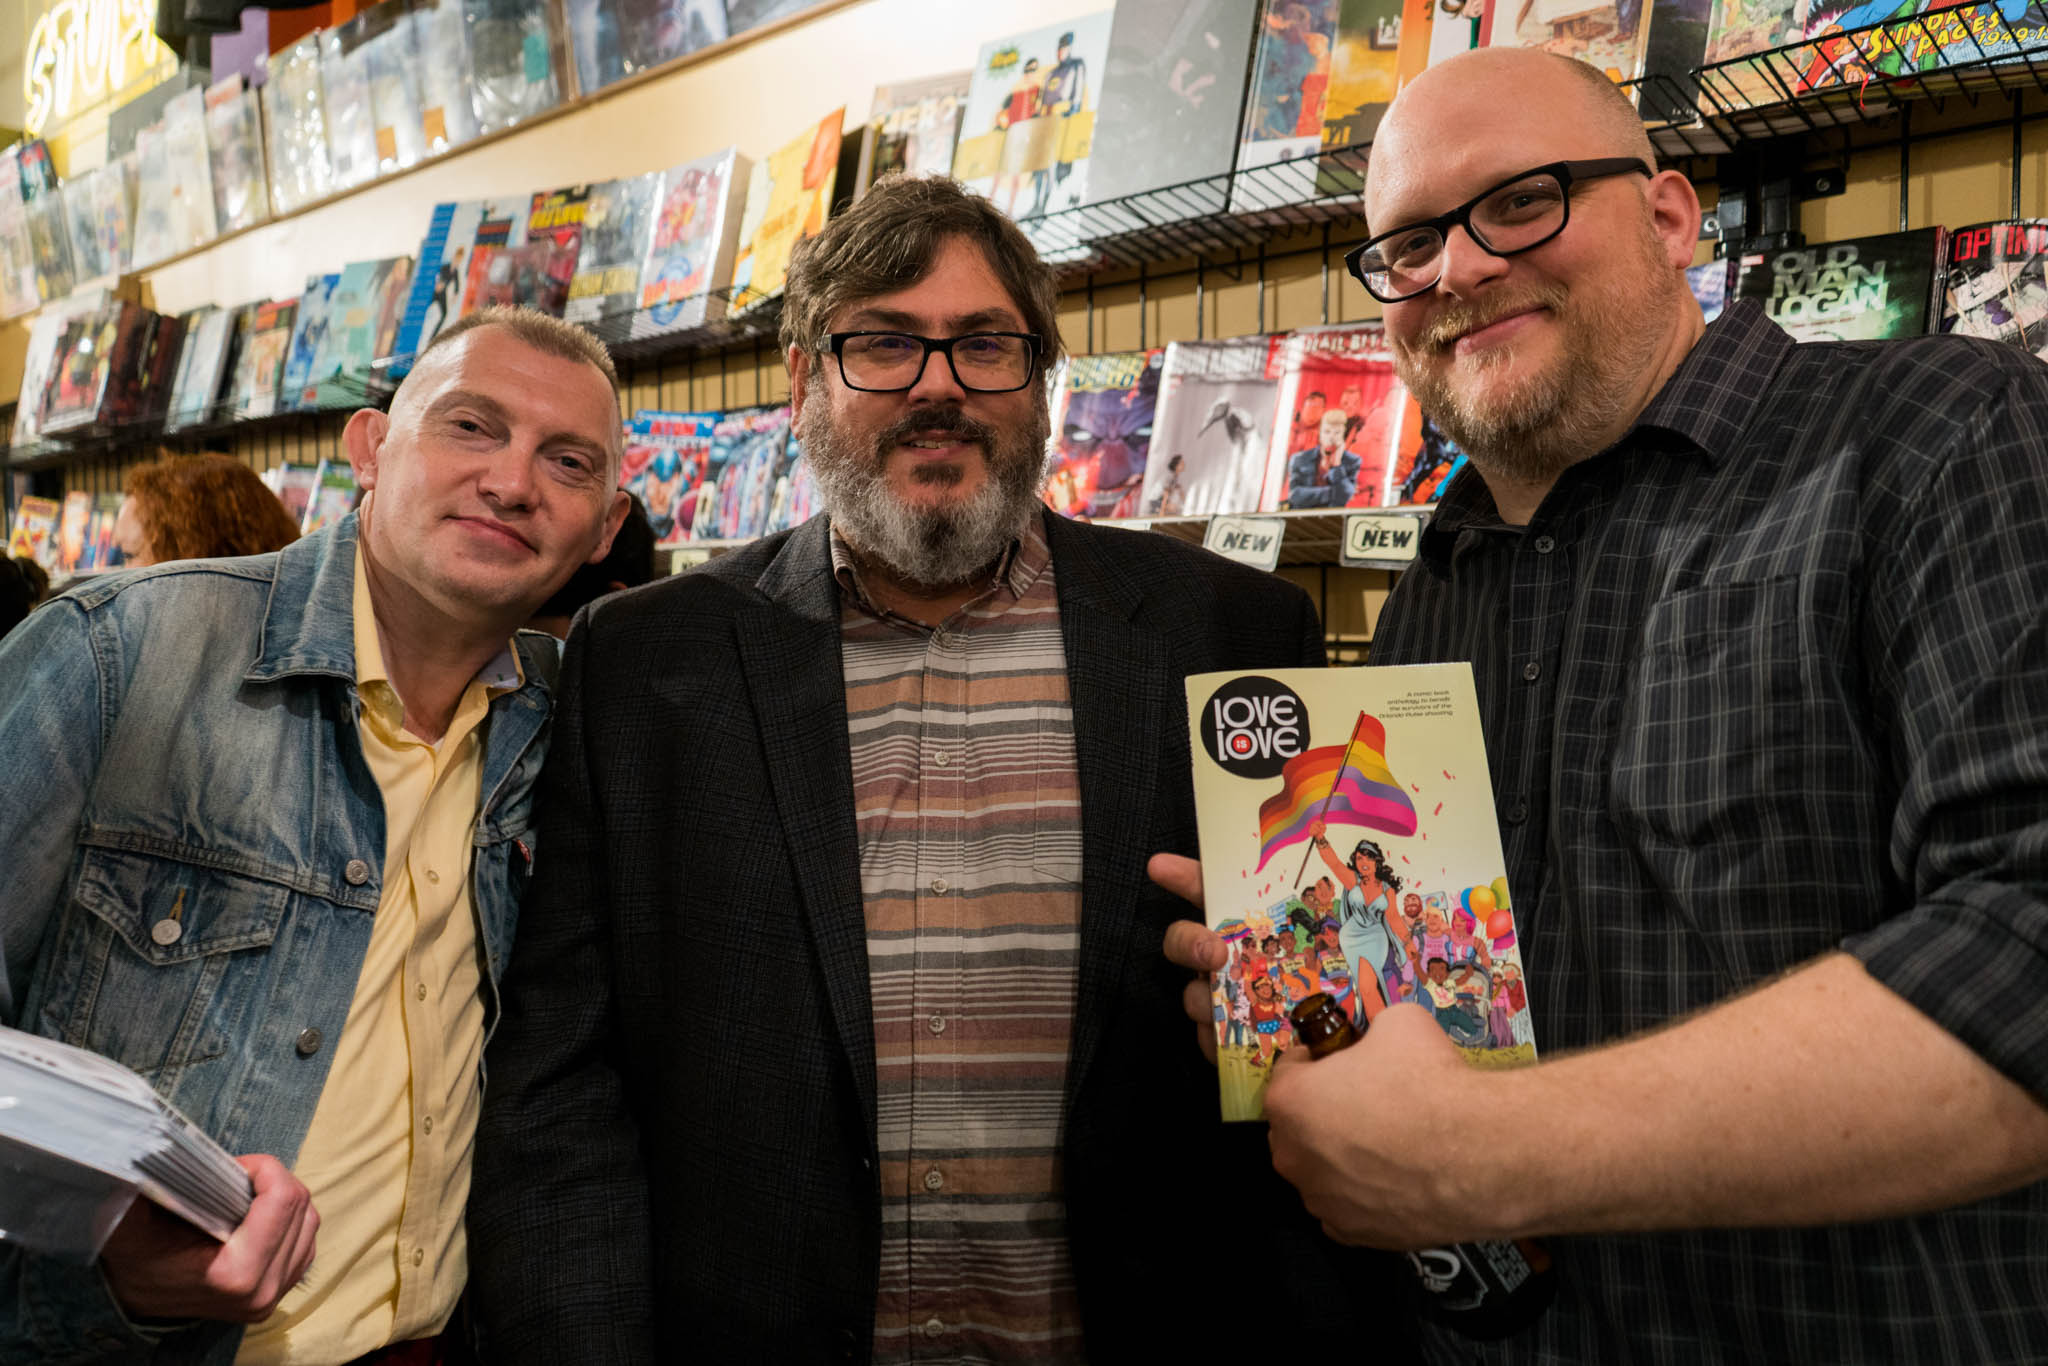 Love Is Love, Golden Apple Comics, Marc Andreyko, DC Comics, IDW Publishing, Crowd, Paul Dini, Joe on Joe Podcast